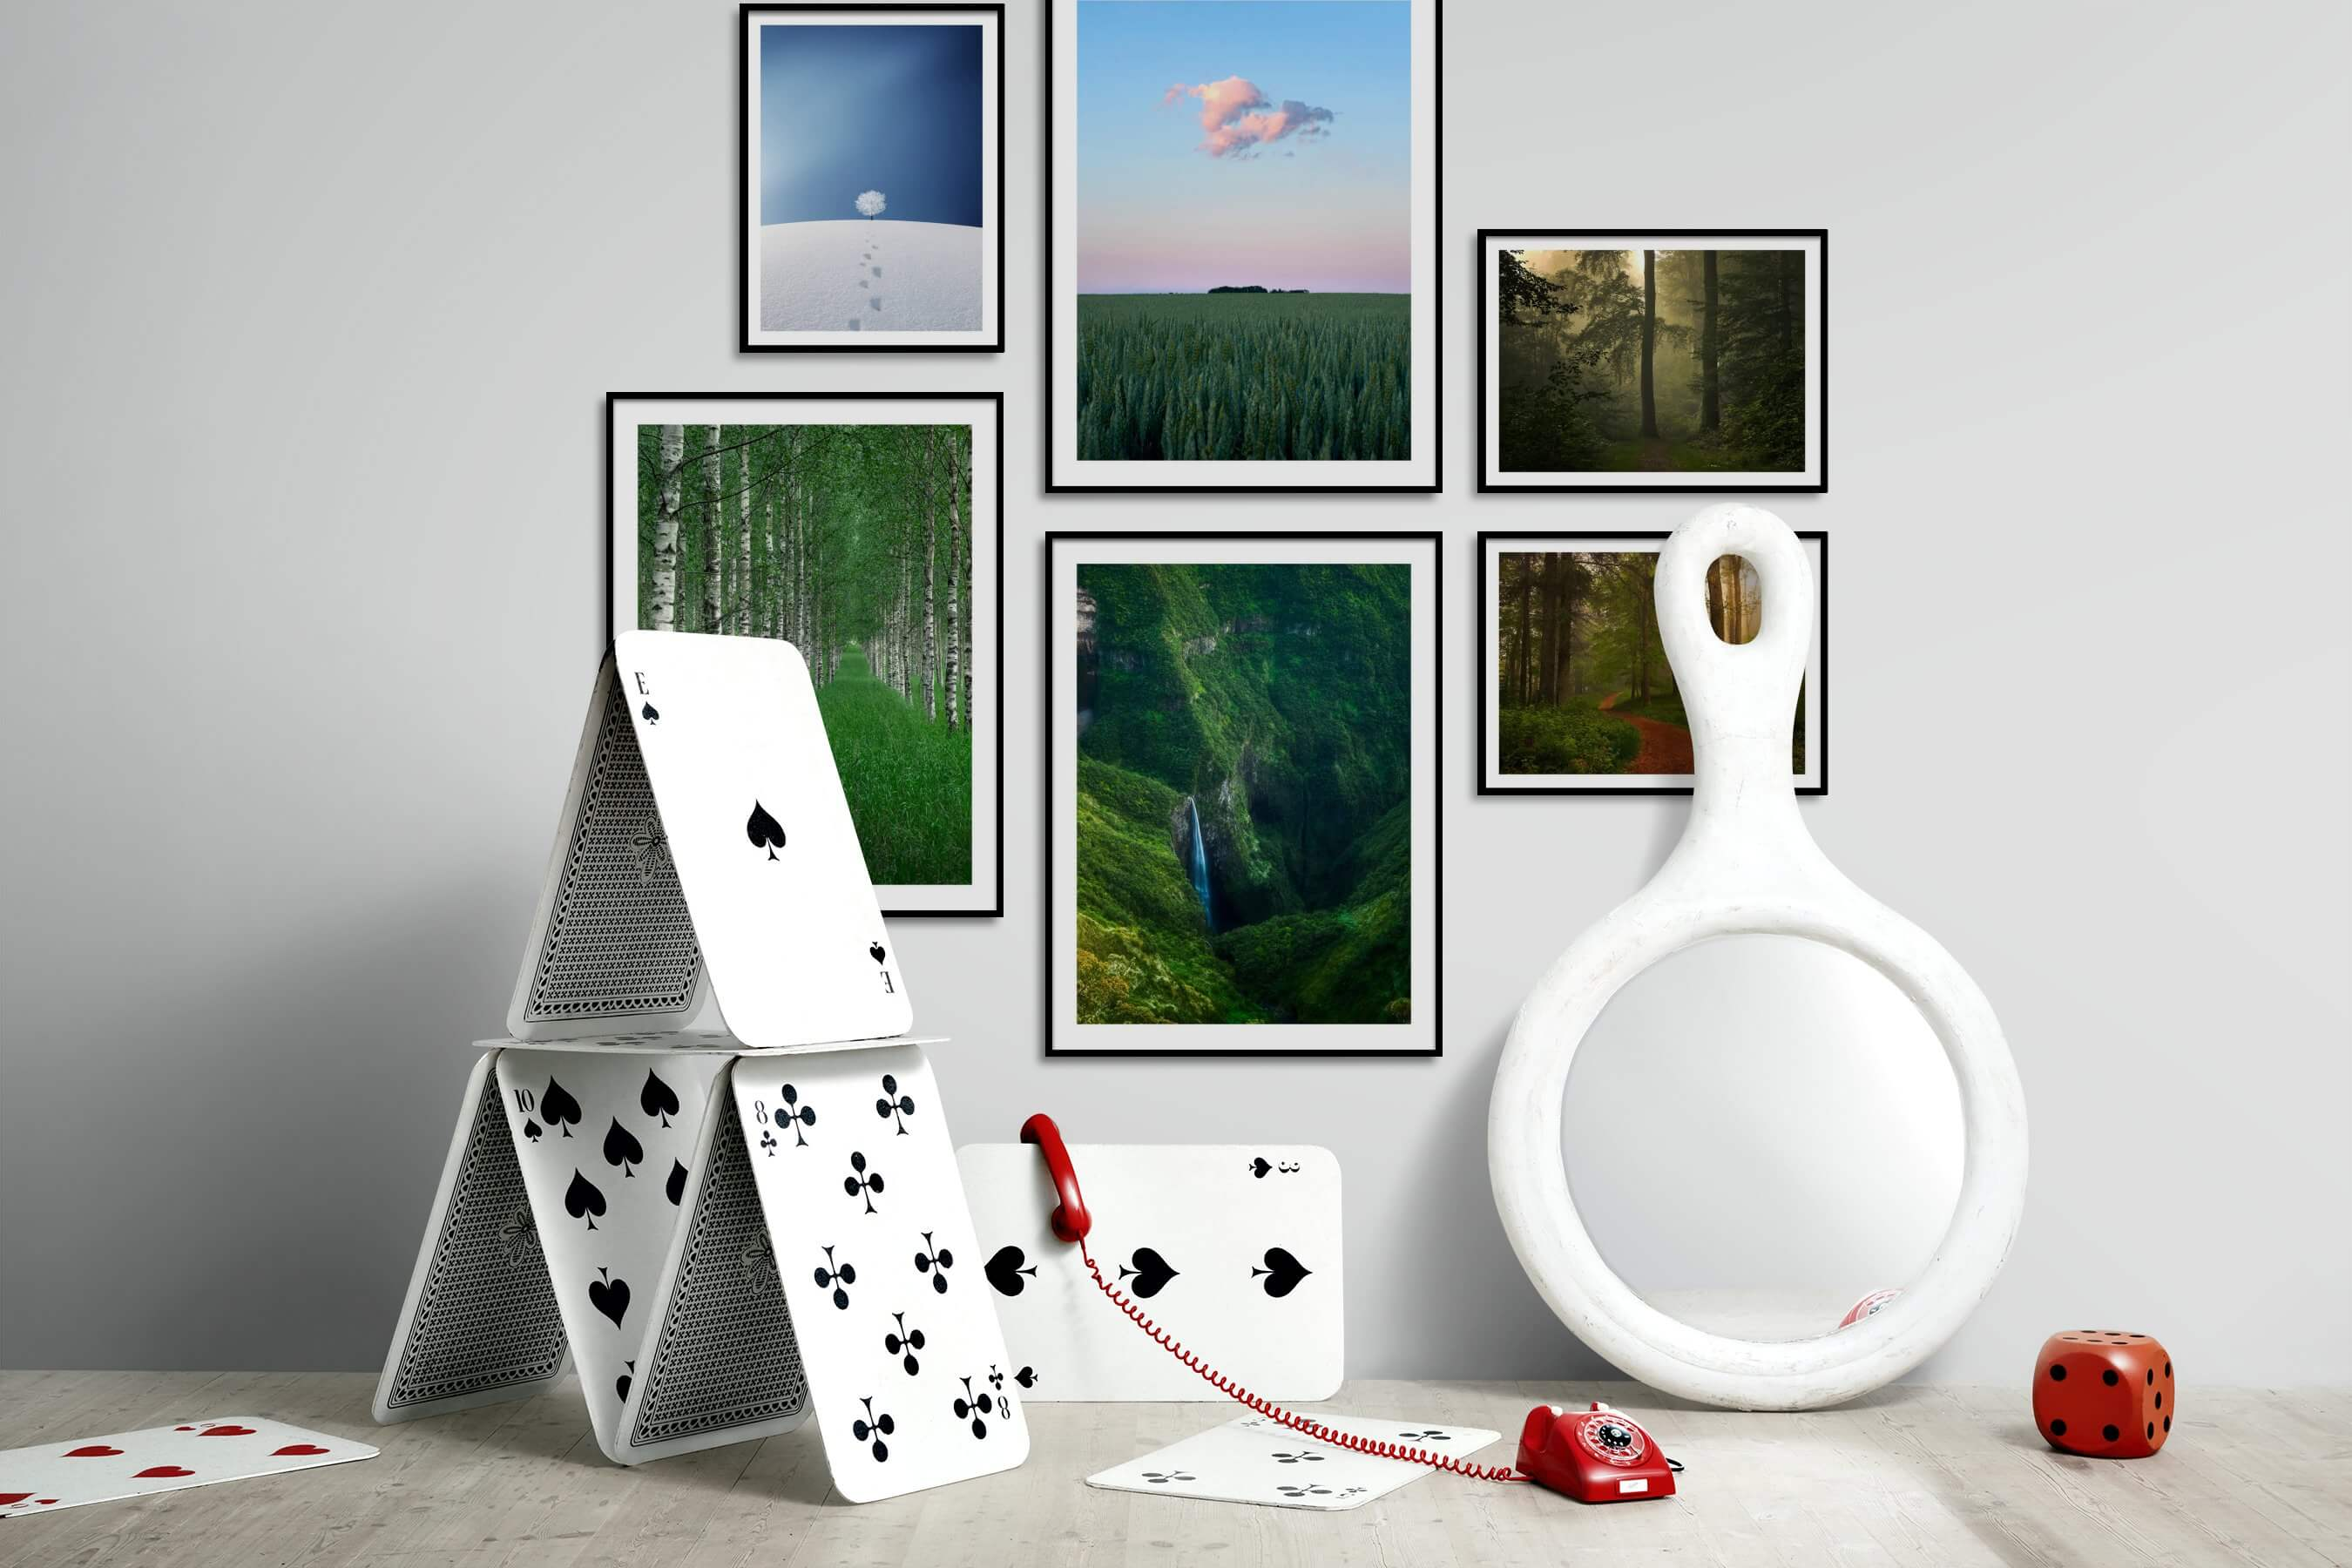 Gallery wall idea with six framed pictures arranged on a wall depicting For the Minimalist, Country Life, Mindfulness, and Nature